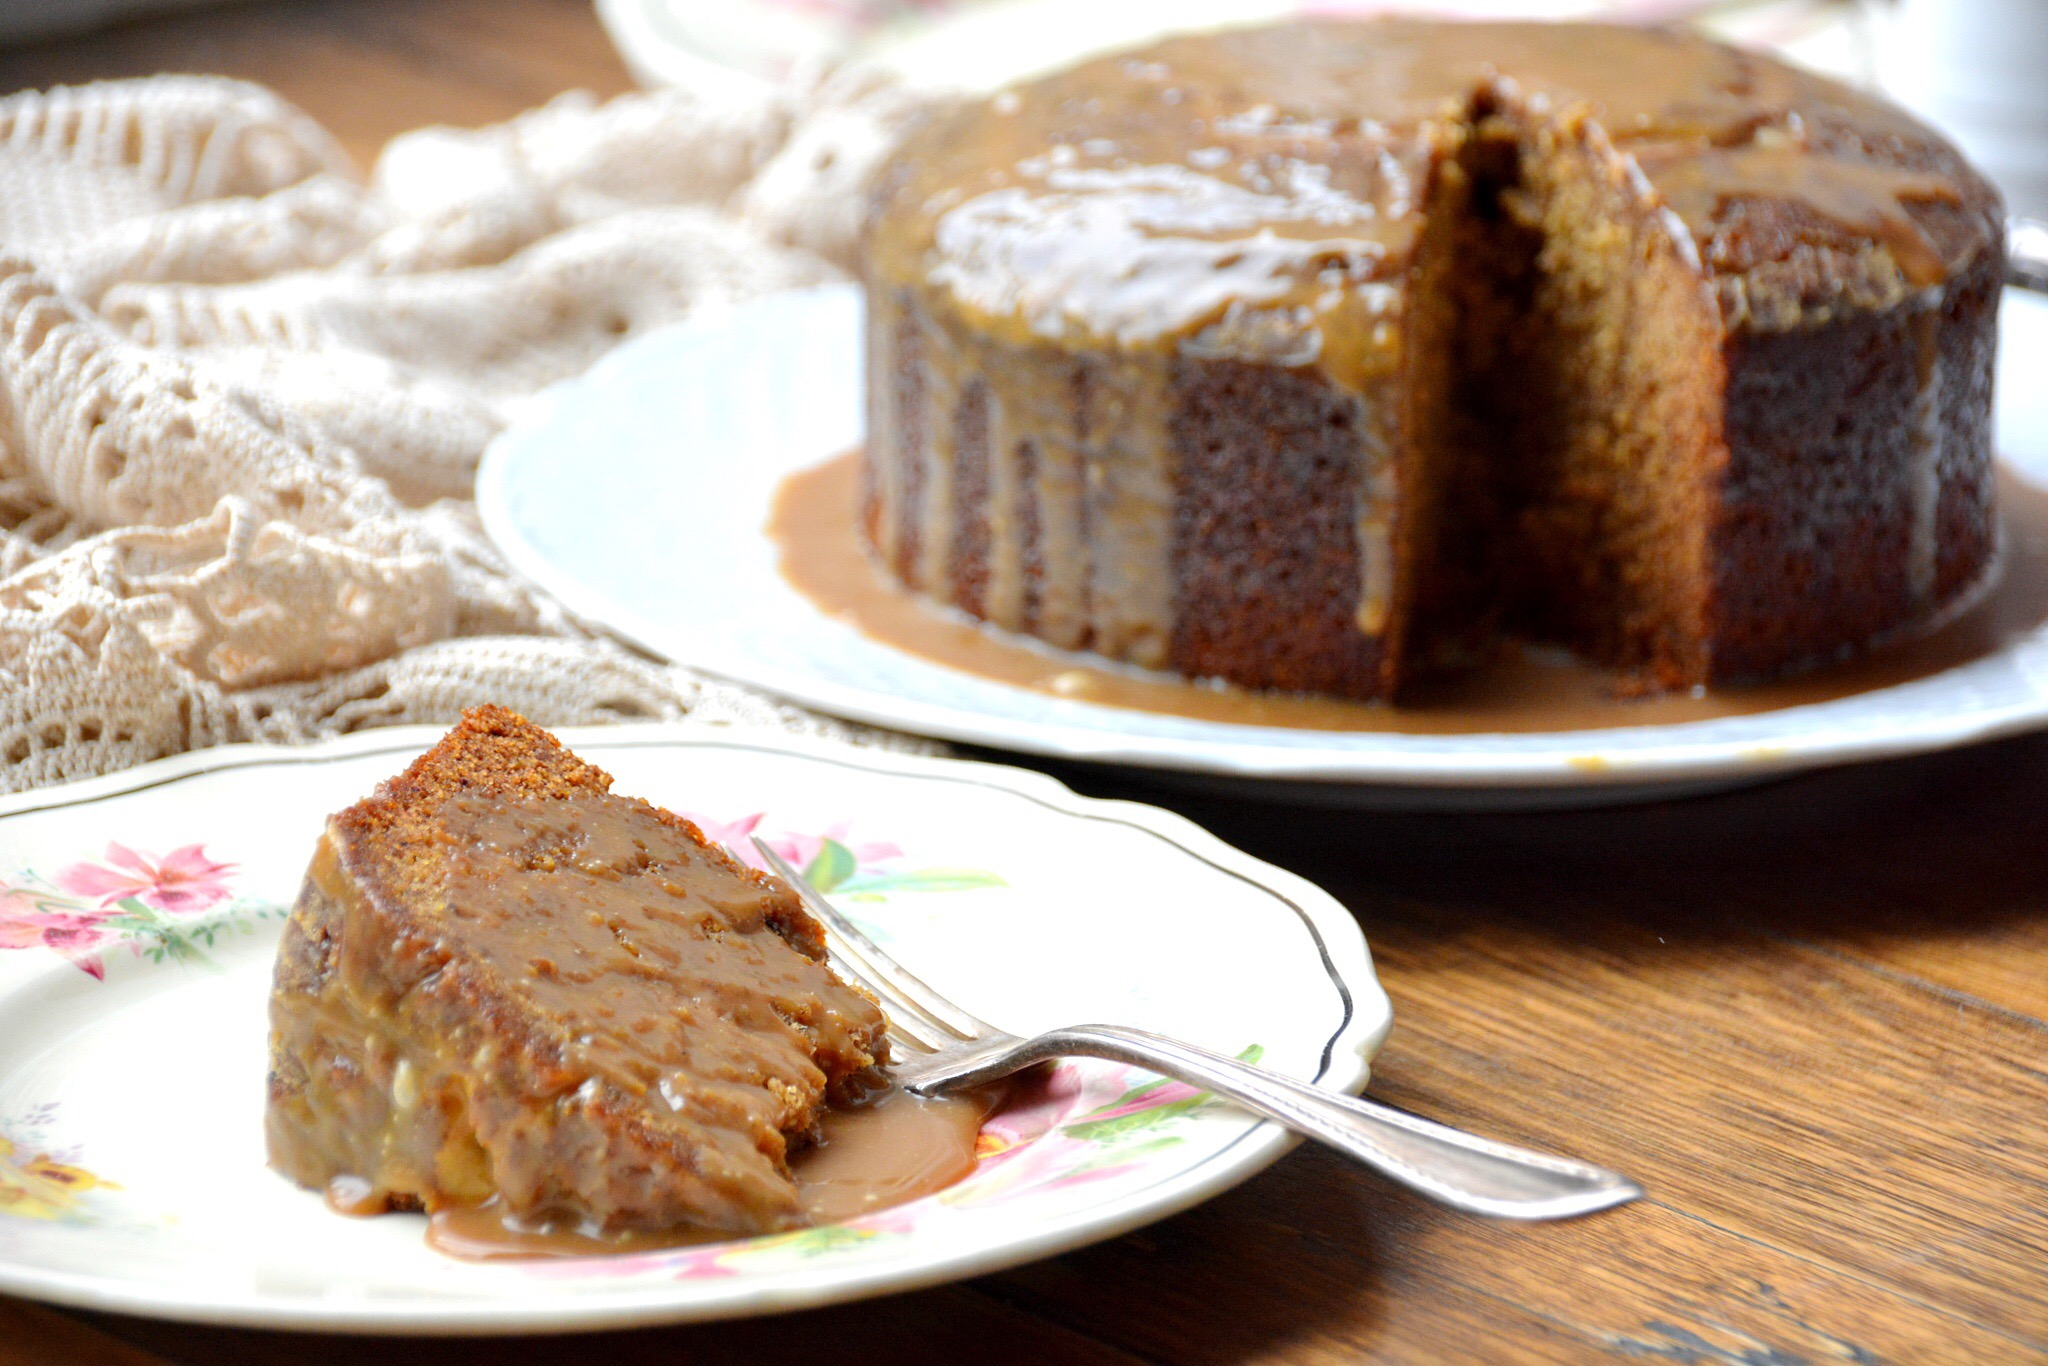 Sticky date pudding – gluten free – thanks to Gabriele Ferron